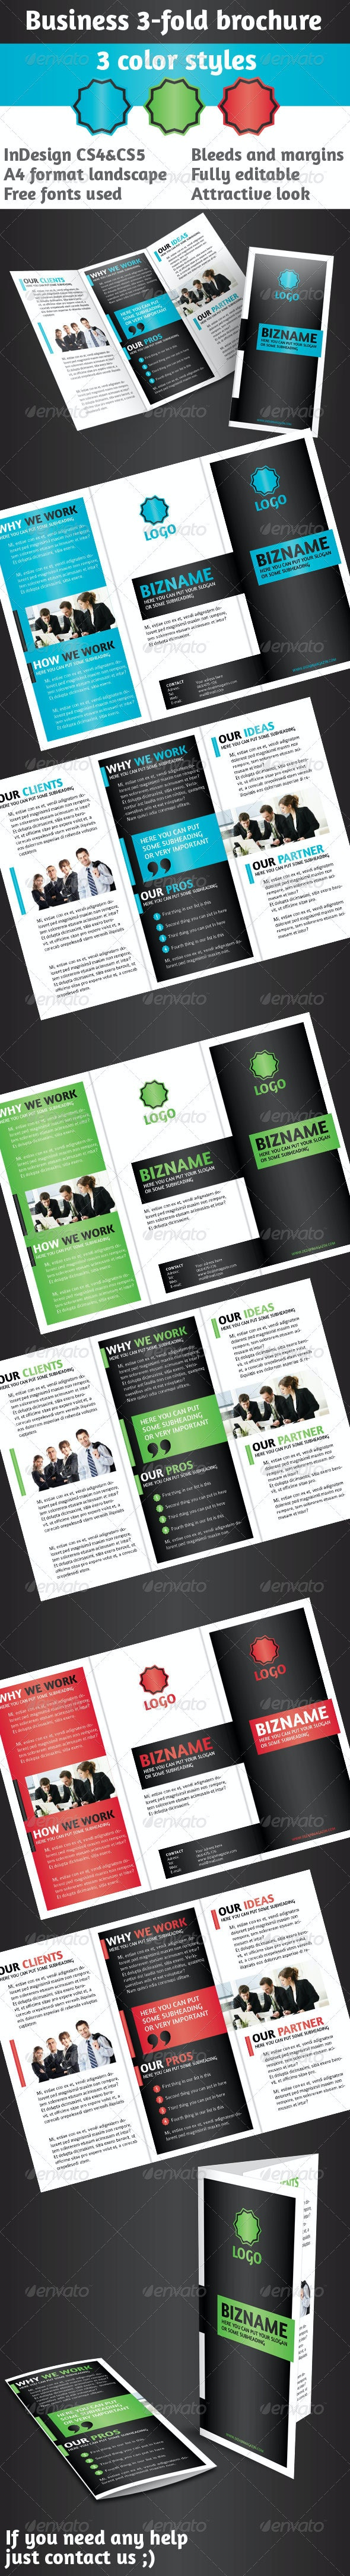 Business 3-Fold Brochure - Multi Color InDesign - Corporate Brochures